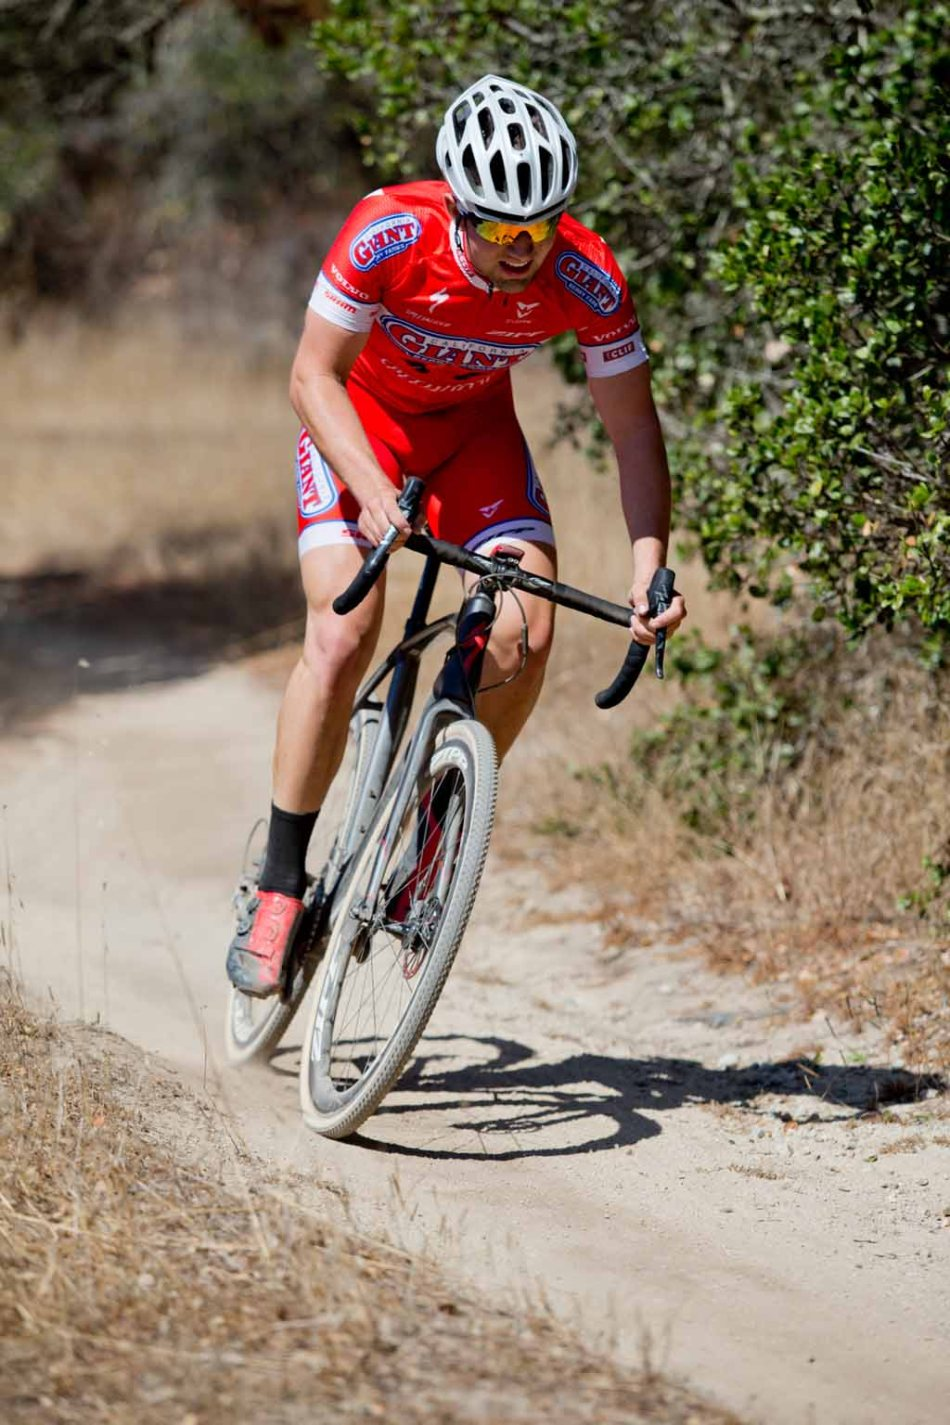 Ortenblad's Weekend Improves with a Win at CCCX